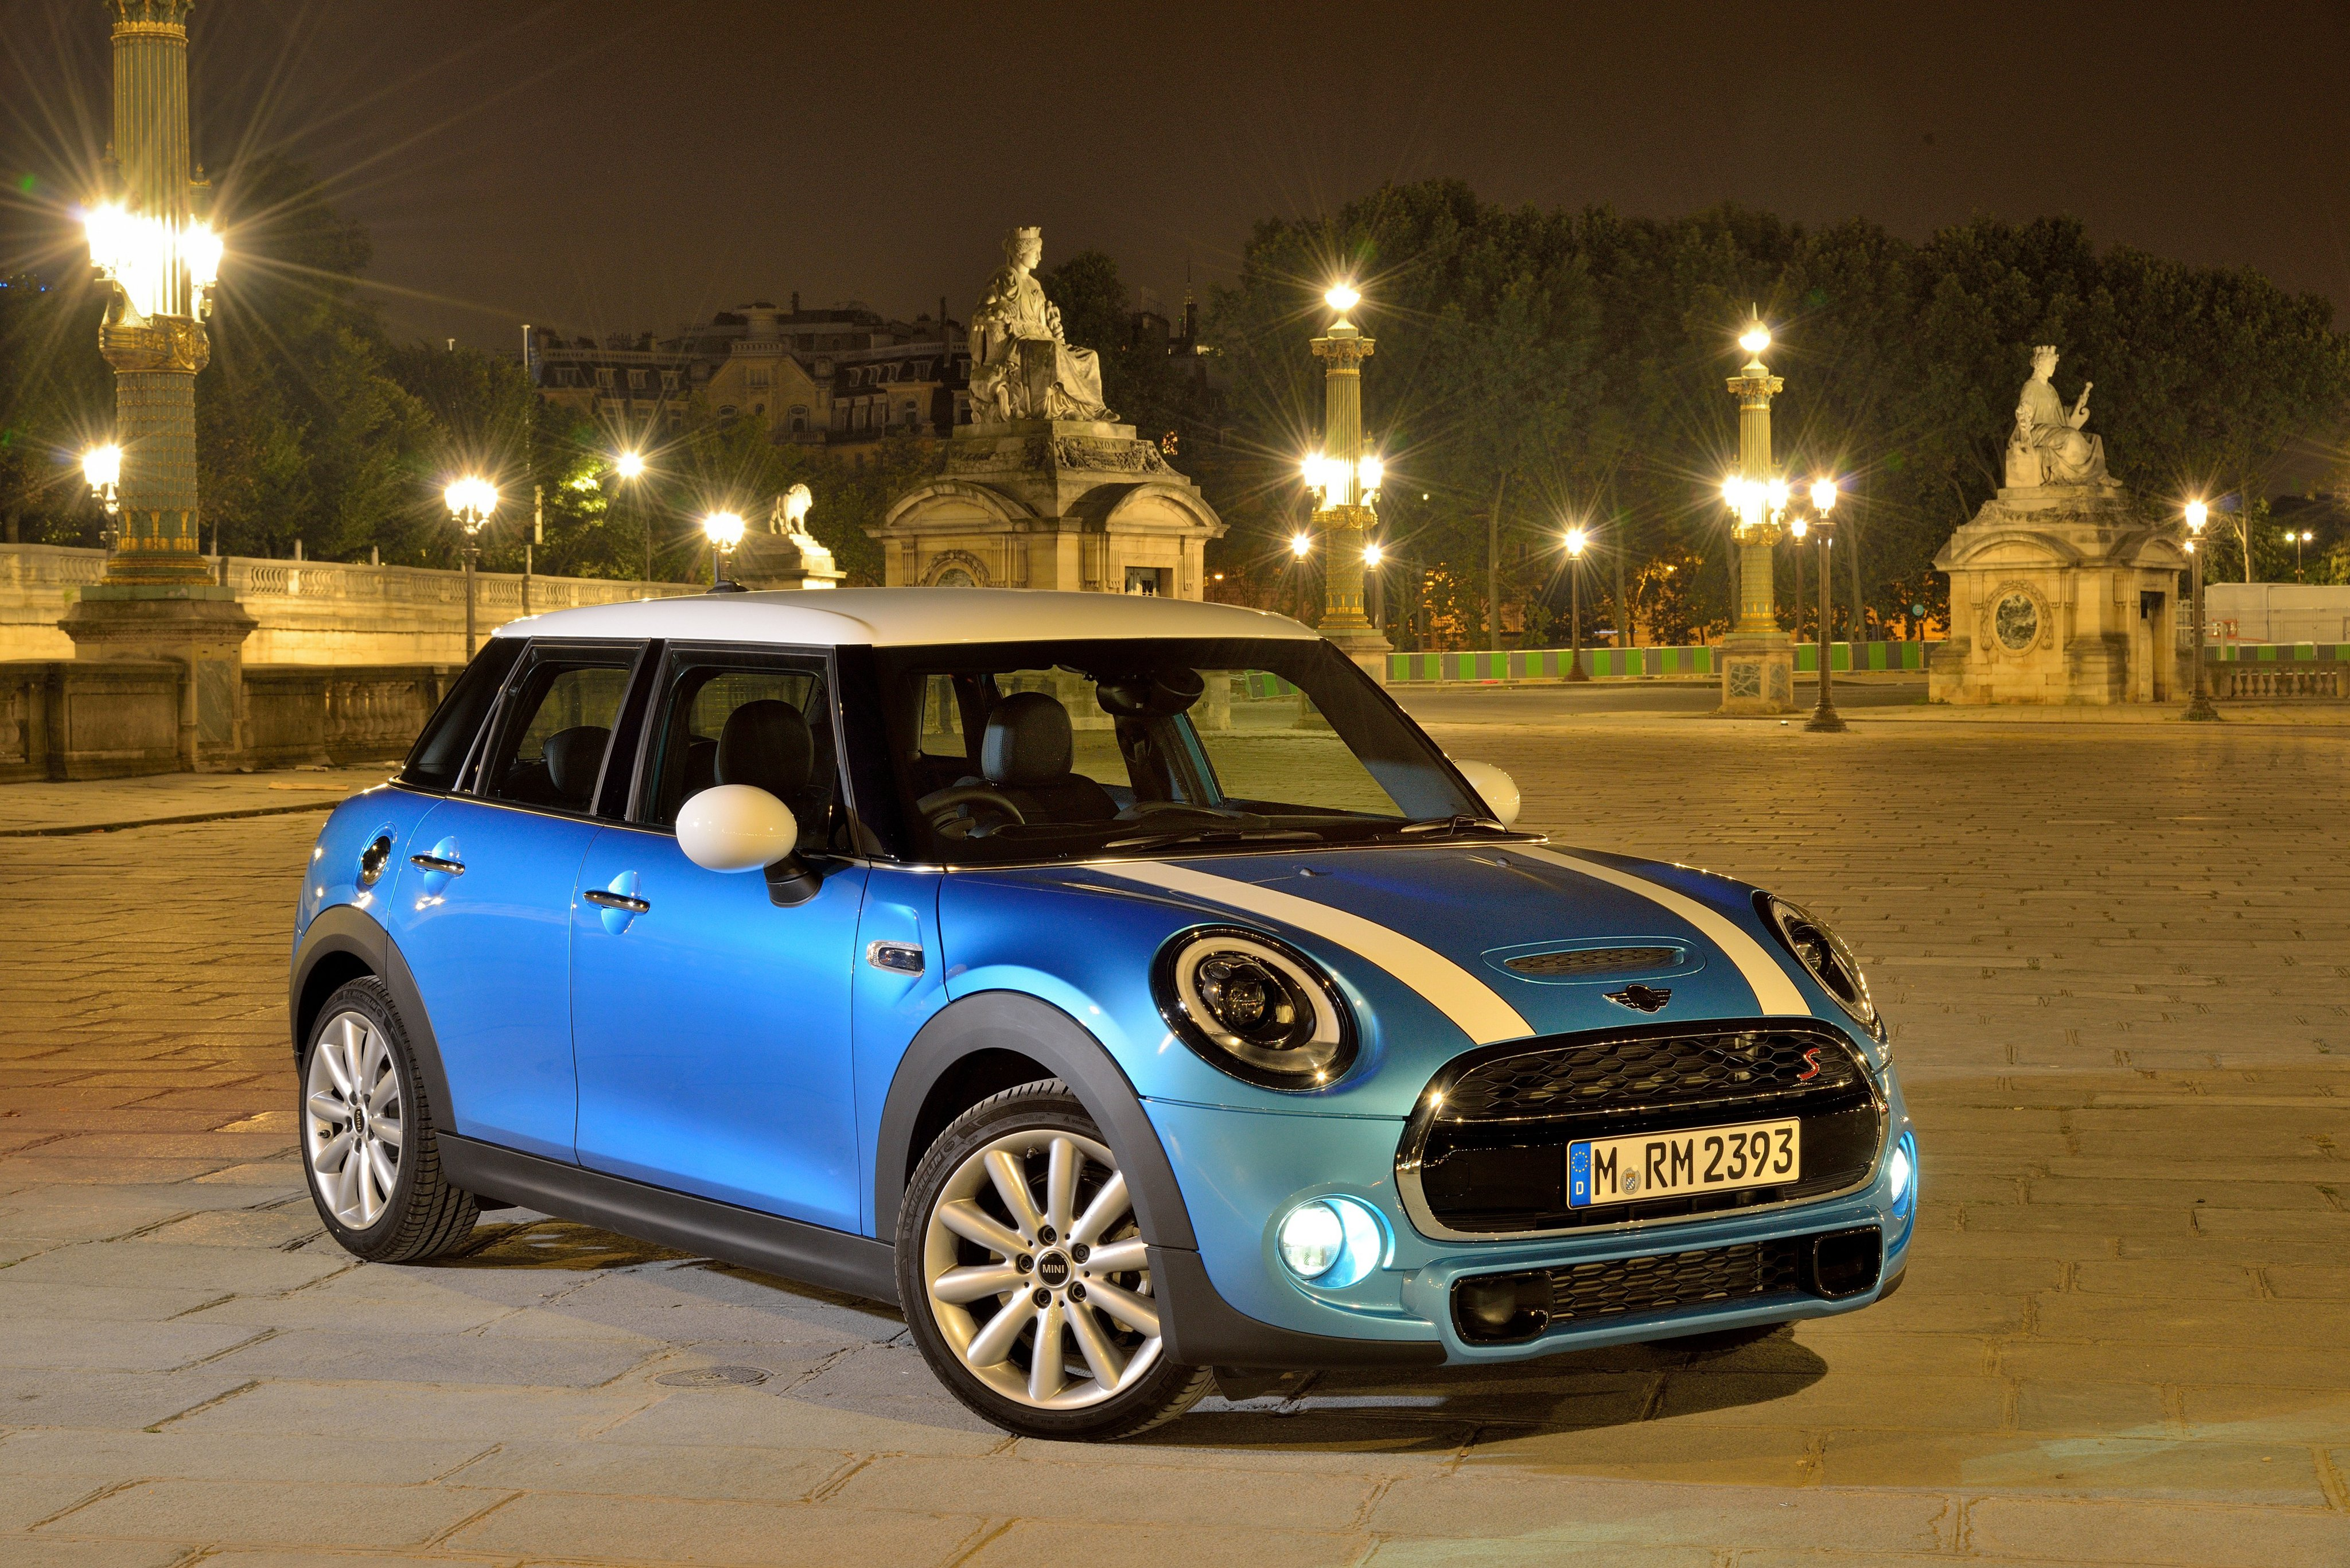 2014 Mini Cooper S D 5 Door F56 Wallpaper 4096x2733